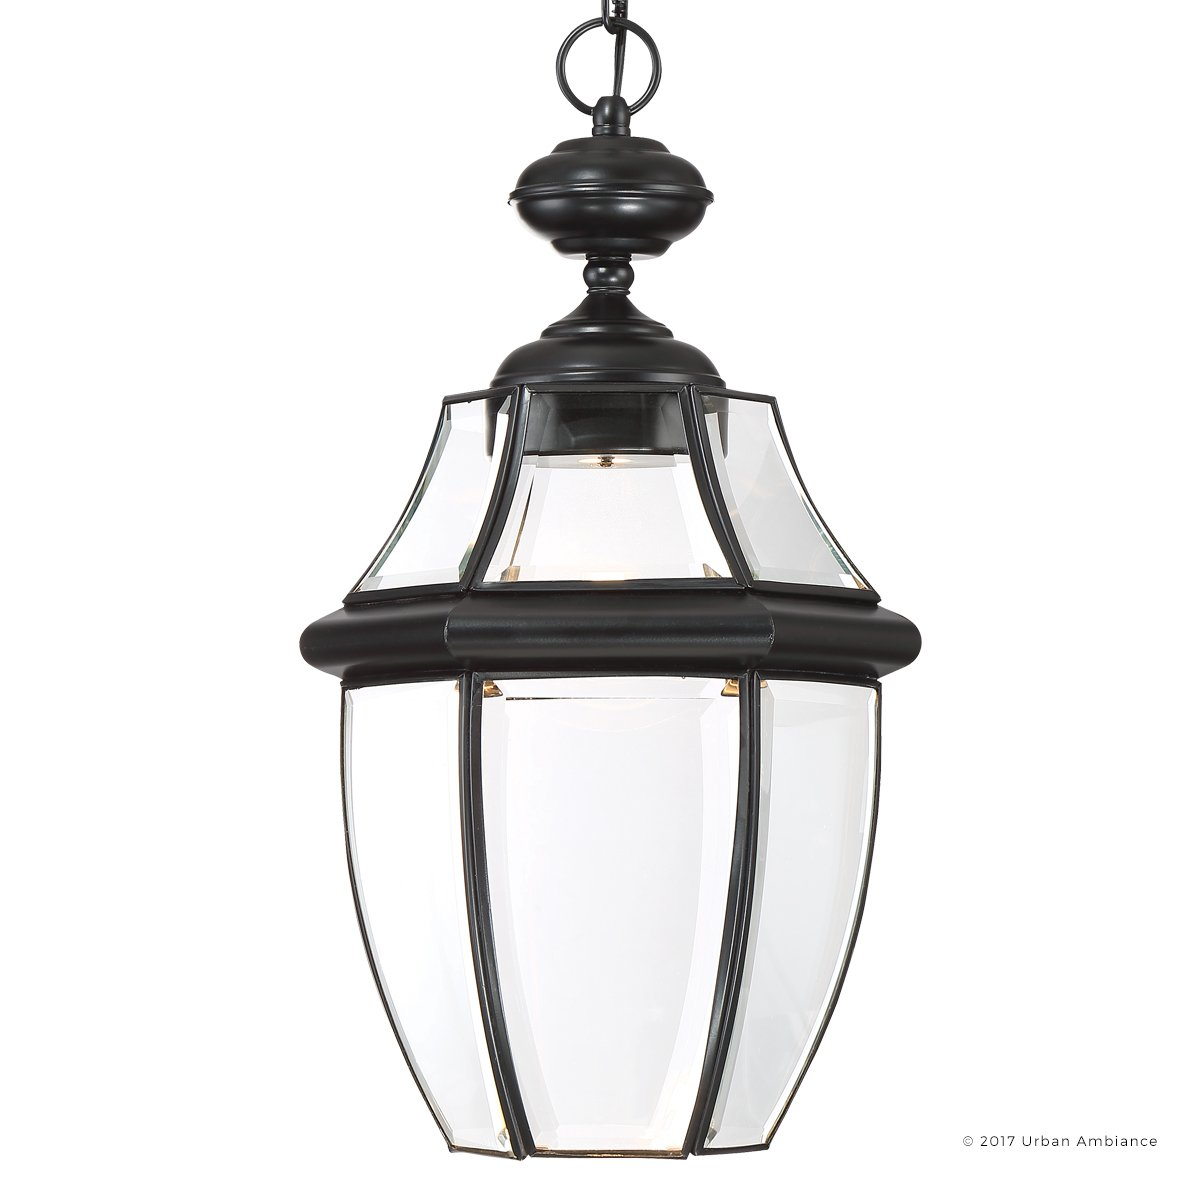 Luxury Colonial Outdoor LED Pendant Light, Large Size: 19''H x 11''W, with Tudor Style Elements, High-End Black Silk Finish and Beveled Glass, Integrated LED Technology, UQL1164 by Urban Ambiance